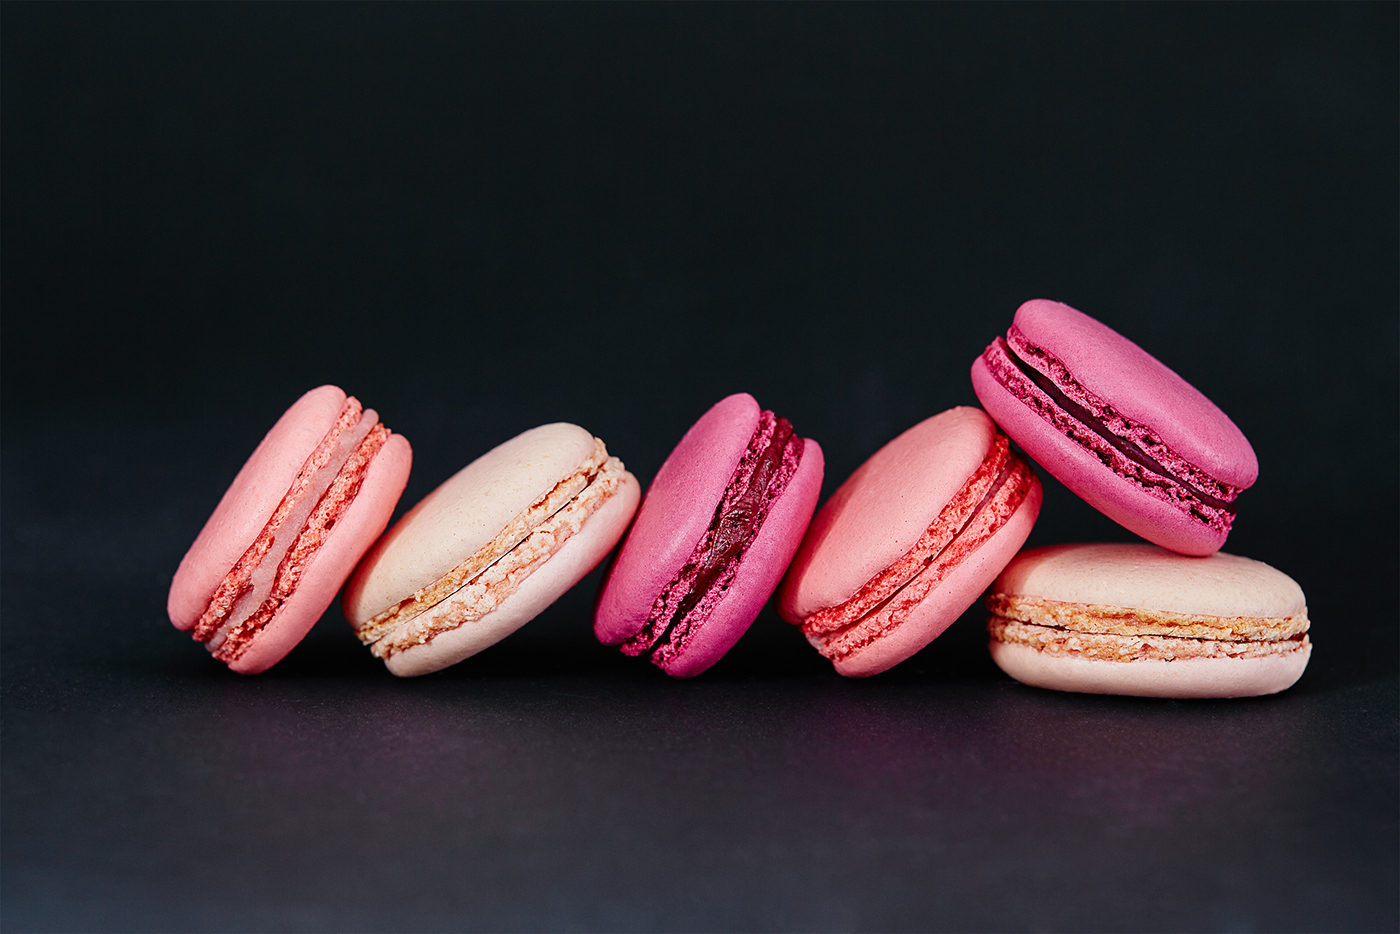 Food ,styling ,concept,case,product,Culinary,package,design,macarons,pastry,dessert